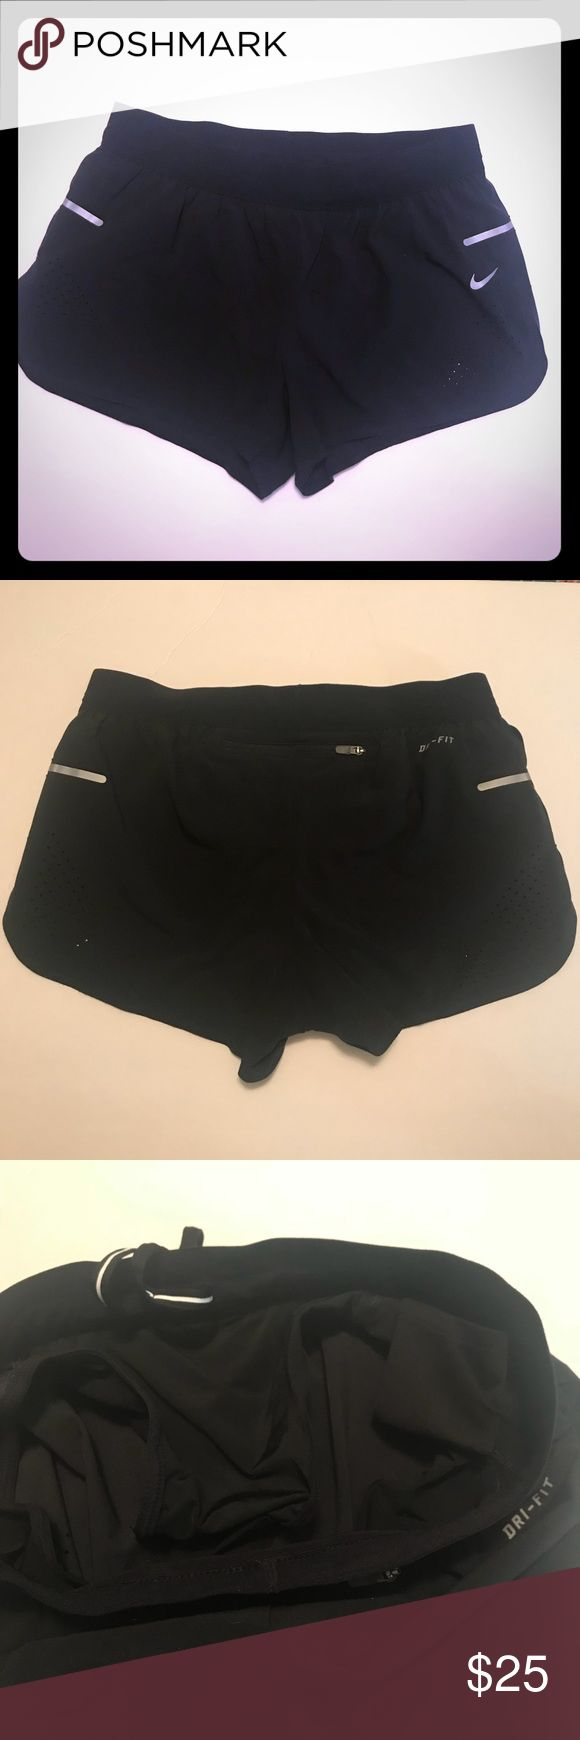 Nike Running Shorts Black running shorts with lining, small inner pocket and zip back pocket. They have reflective strips on side and perforated details. Never worn. Nike Shorts